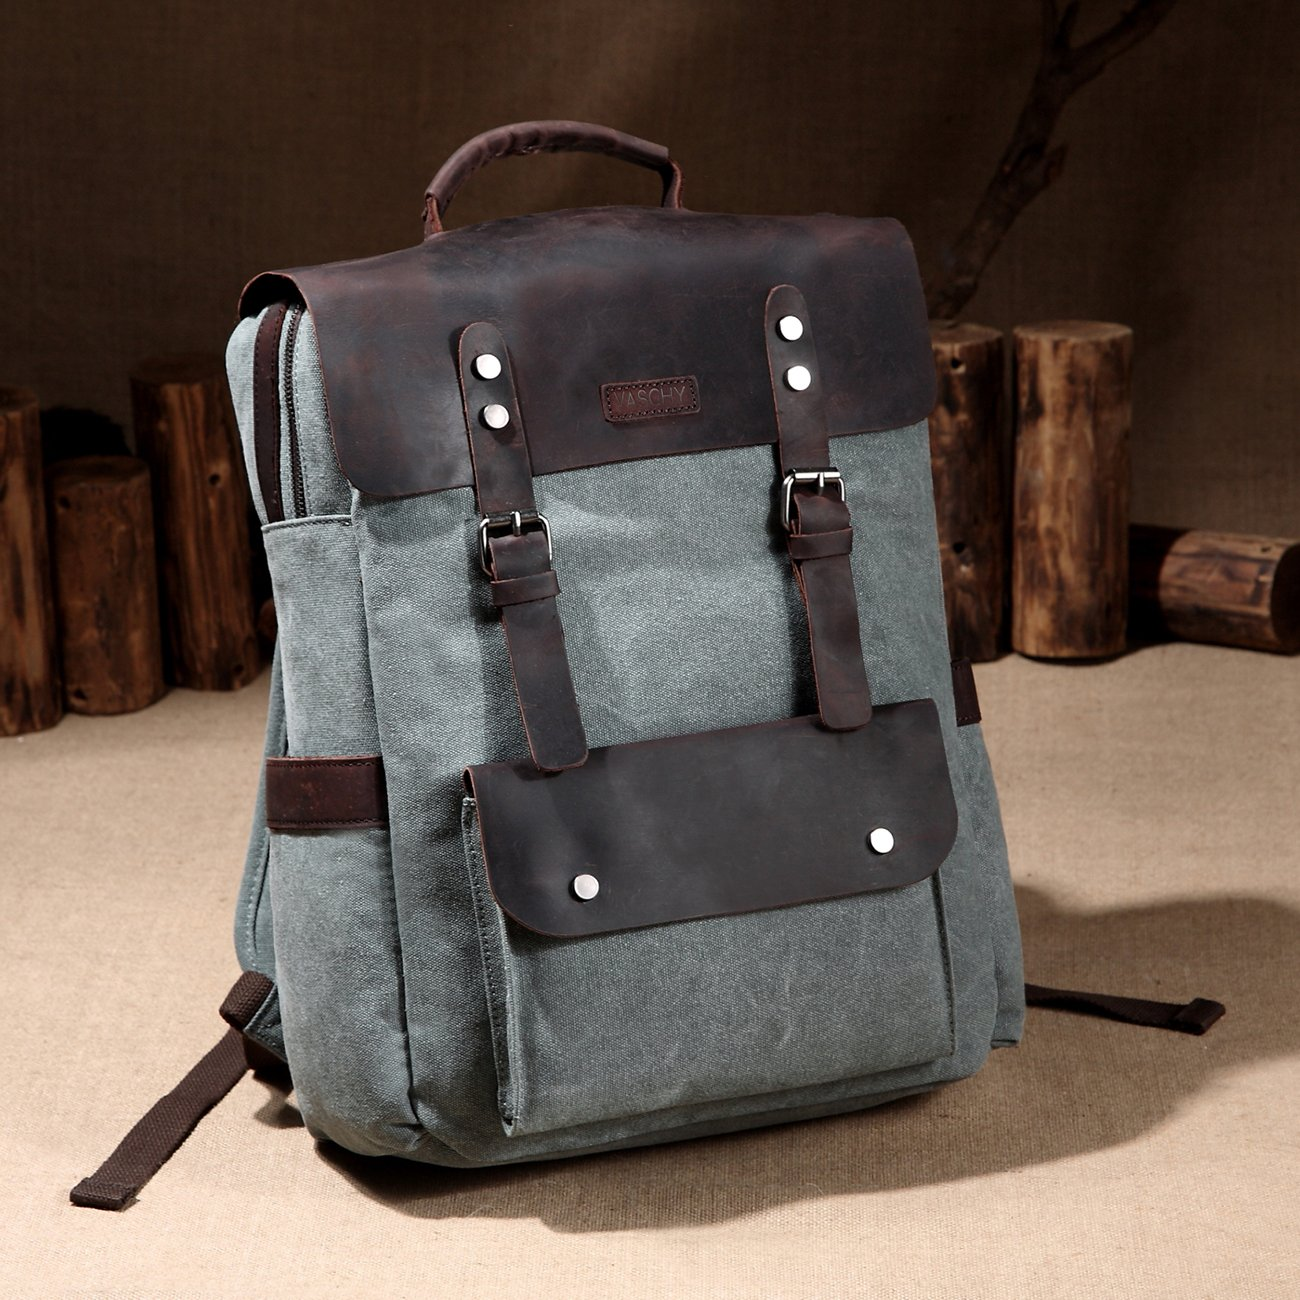 05bb53508d9c Amazon.com  Vaschy Vintage Leather Backpack for Women and Men Canvas  Ergonomic Rucksack Bookbag Daypack fits 15.6 inch Laptop  Computers    Accessories